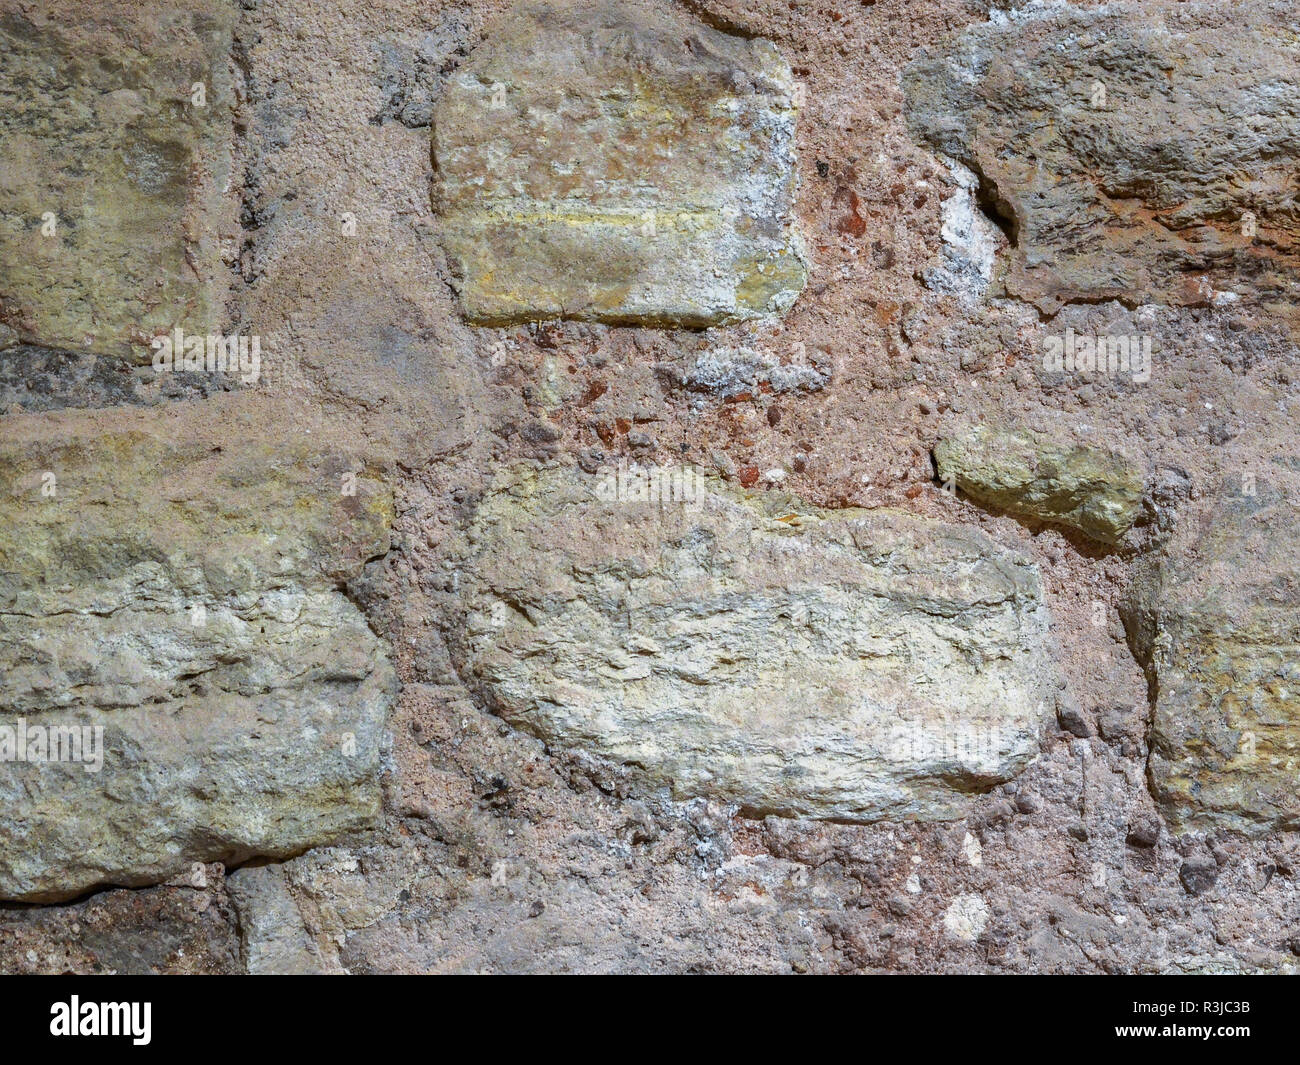 Stone texture, wall surface of an old building. - Stock Image